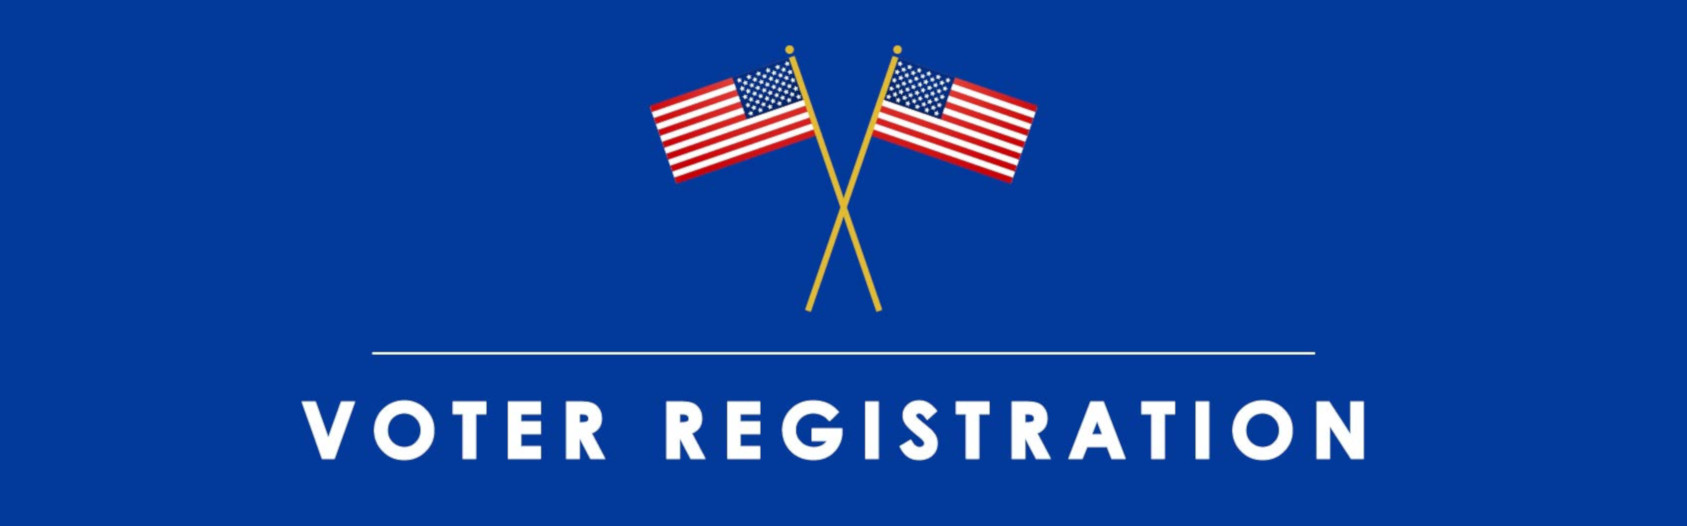 Register to Vote – Beat Cal State Fullerton banner